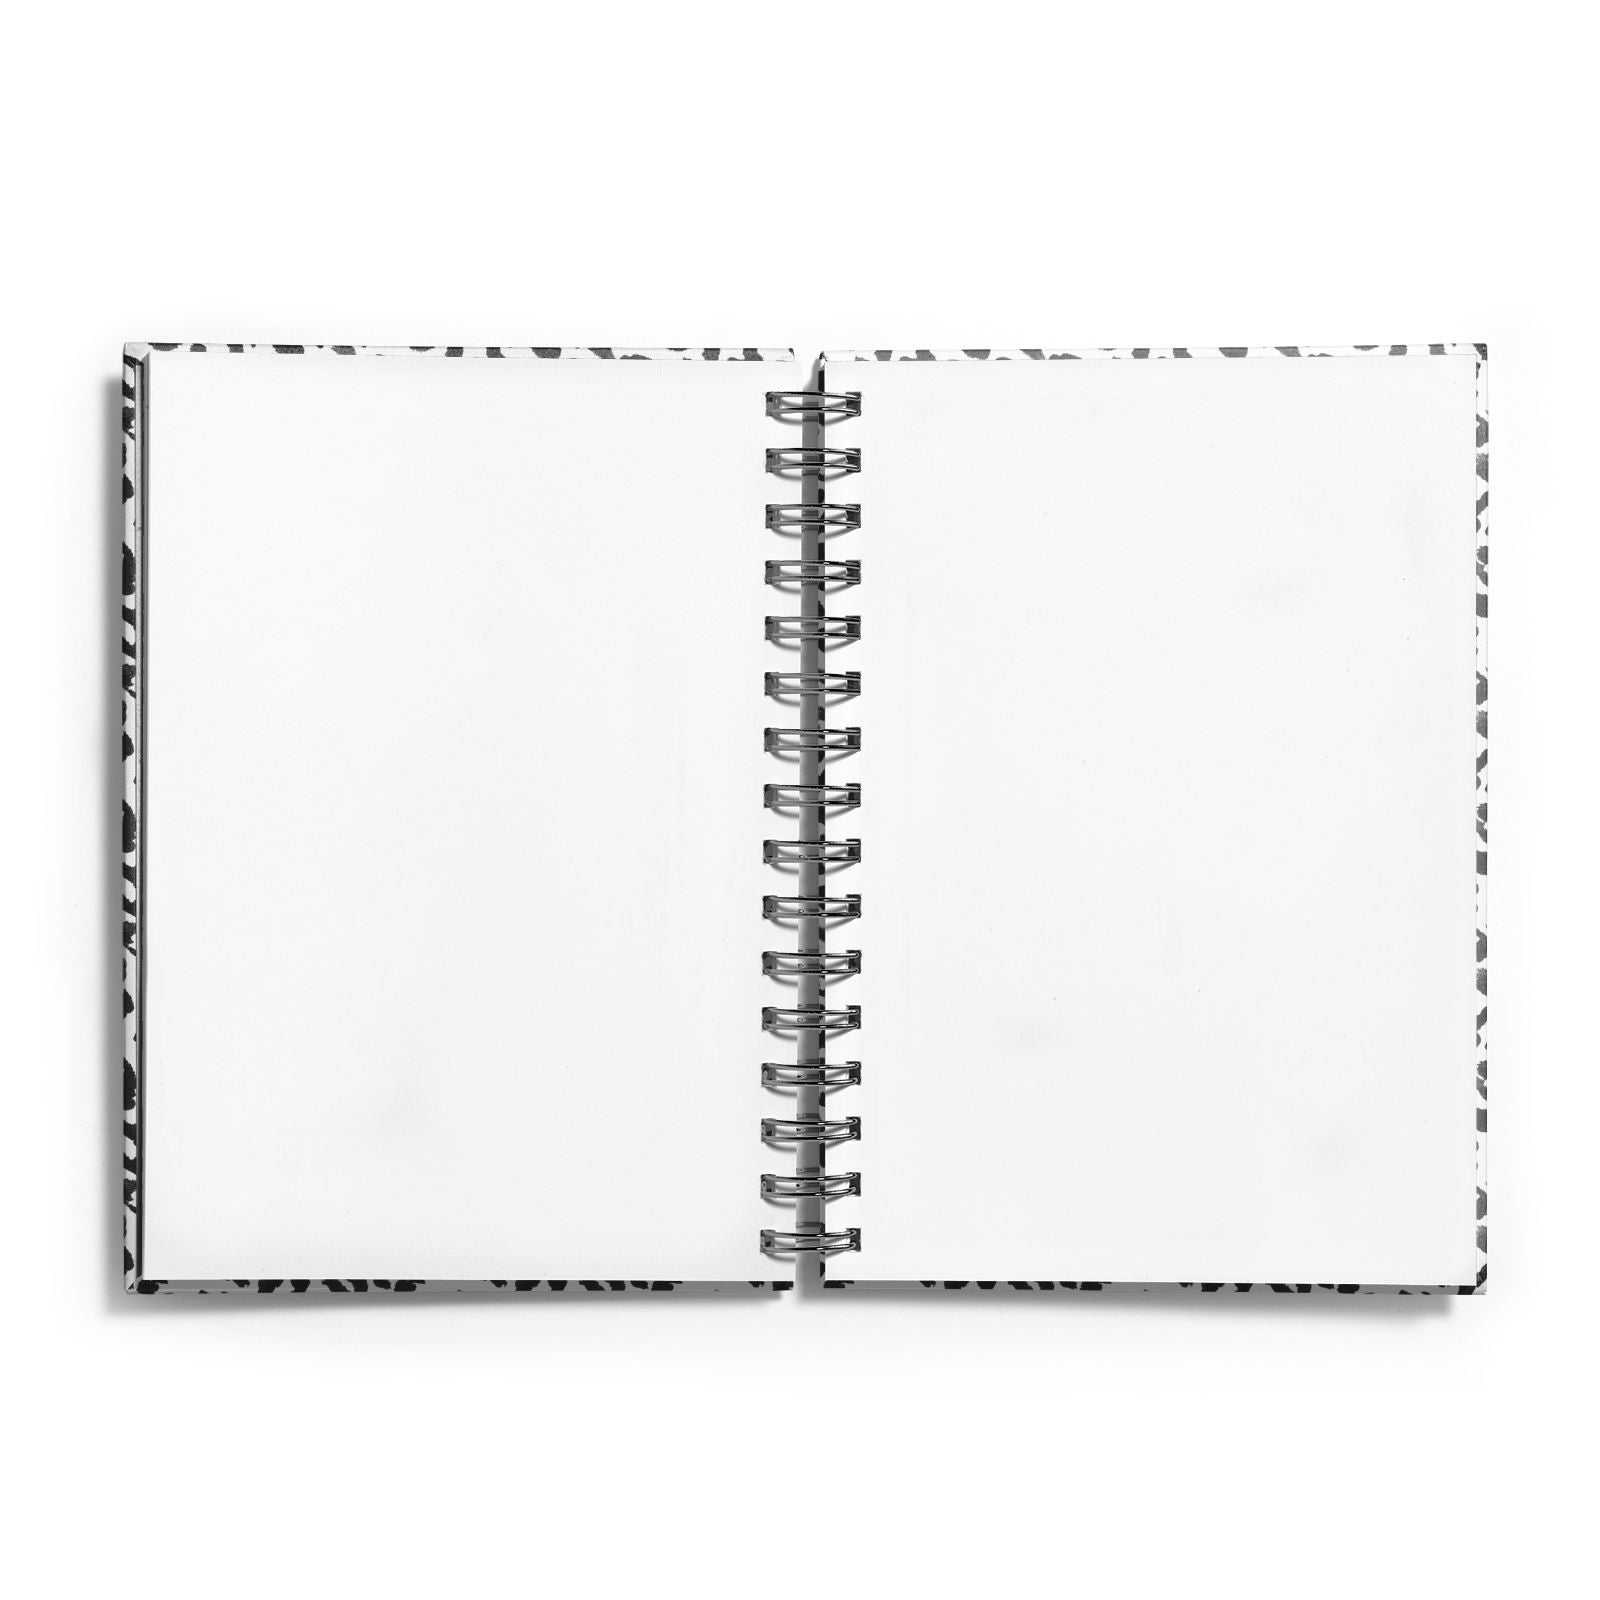 Leopard Print Black and White Notebook with Silver Coil and Plain Paper